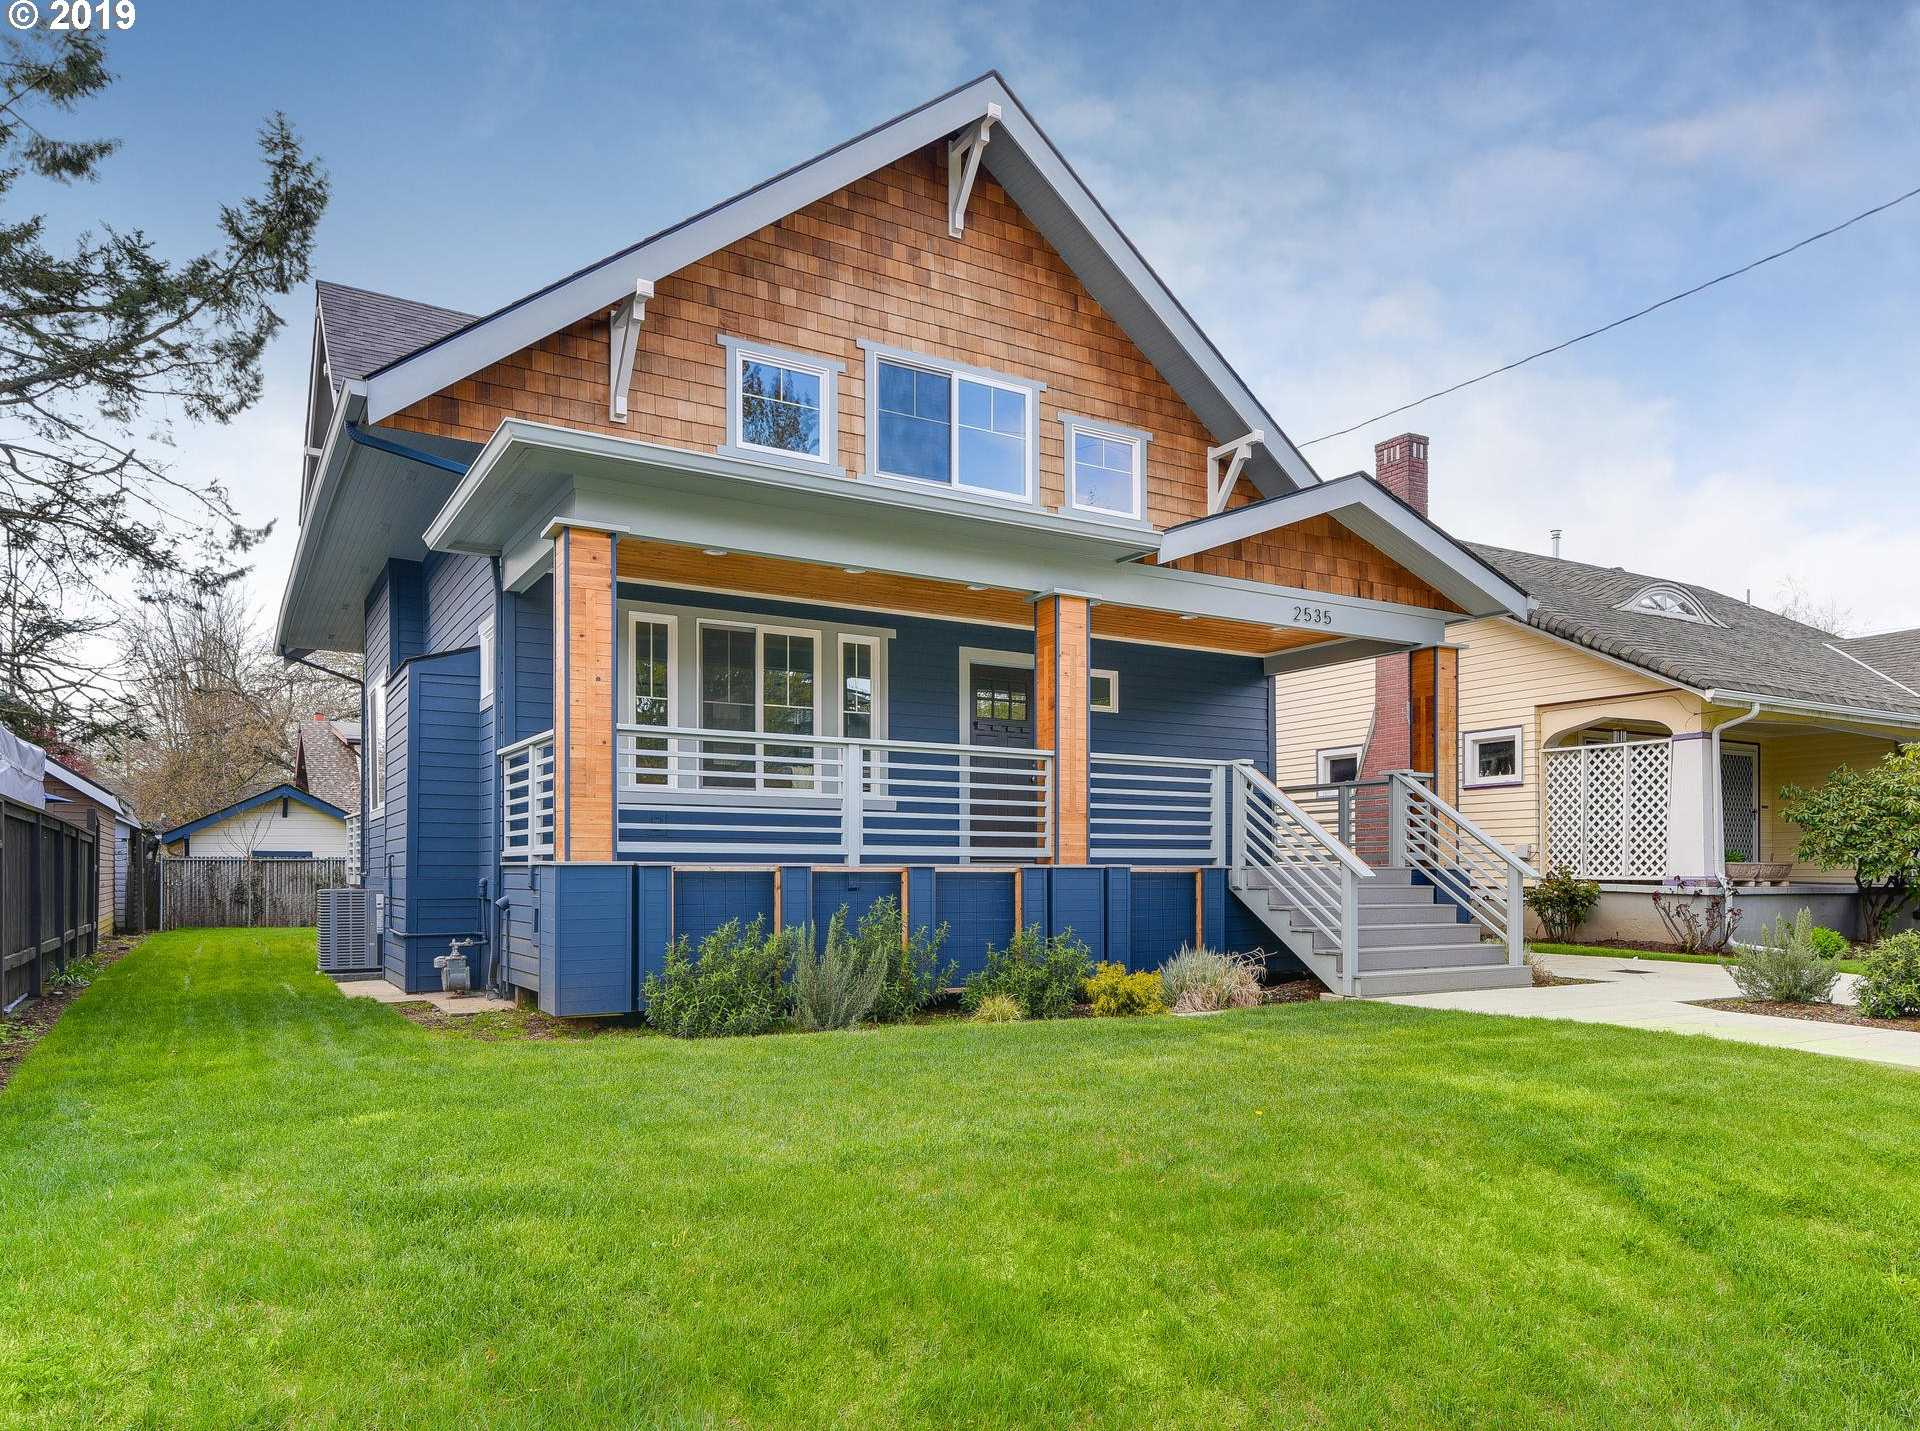 $949,900 - 5Br/4Ba -  for Sale in Grant Park/hollywood, Portland